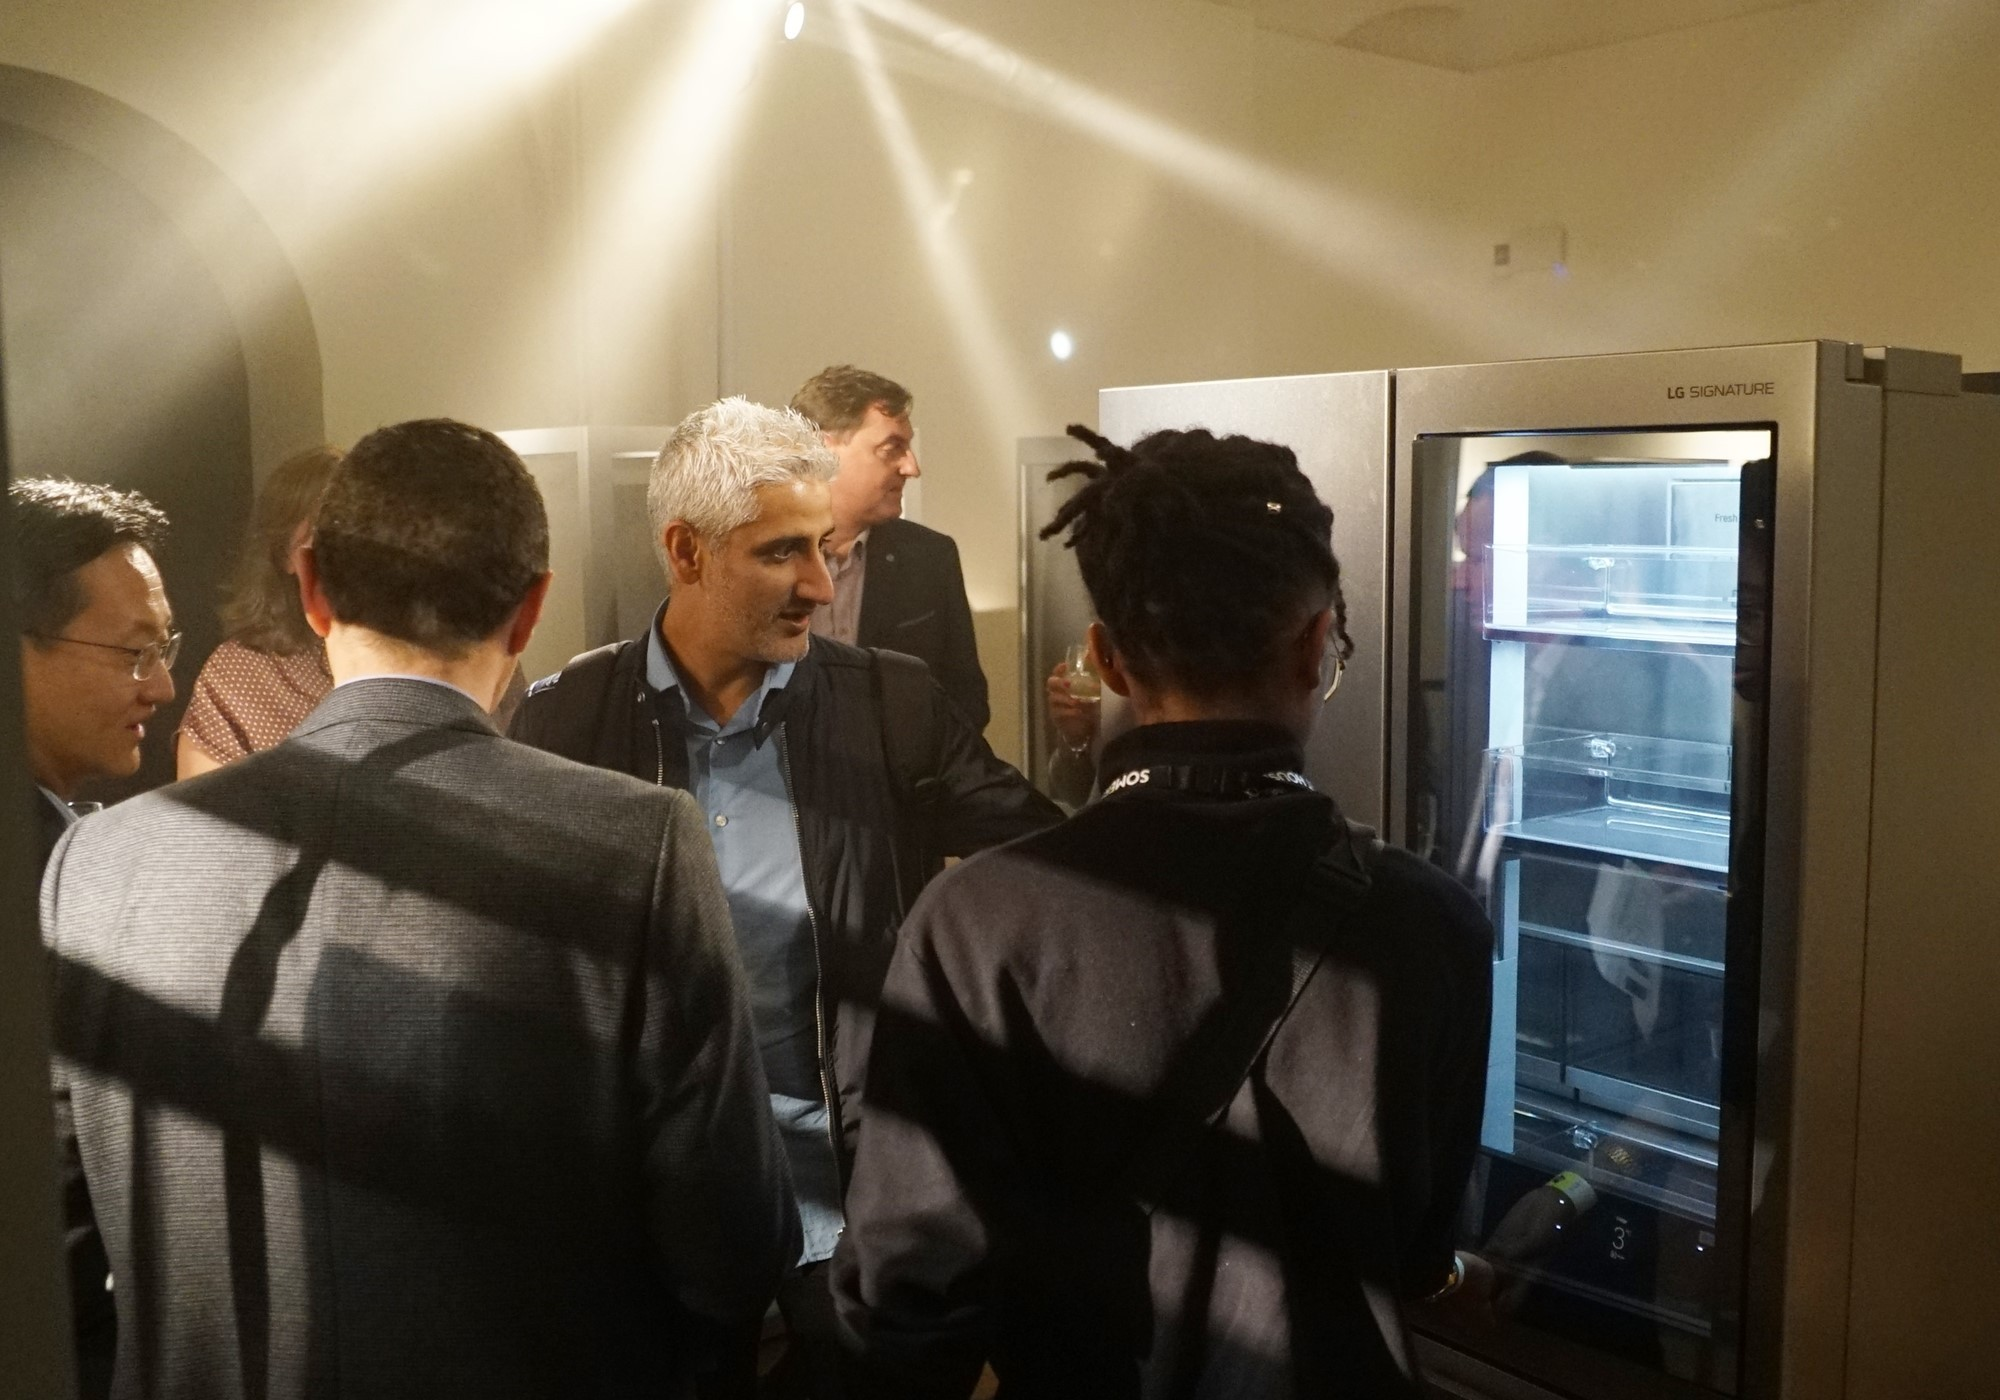 Attendees discuss the LG InstaView Door-in-Door refrigerator at LG SIGNATURE's exhibition space.